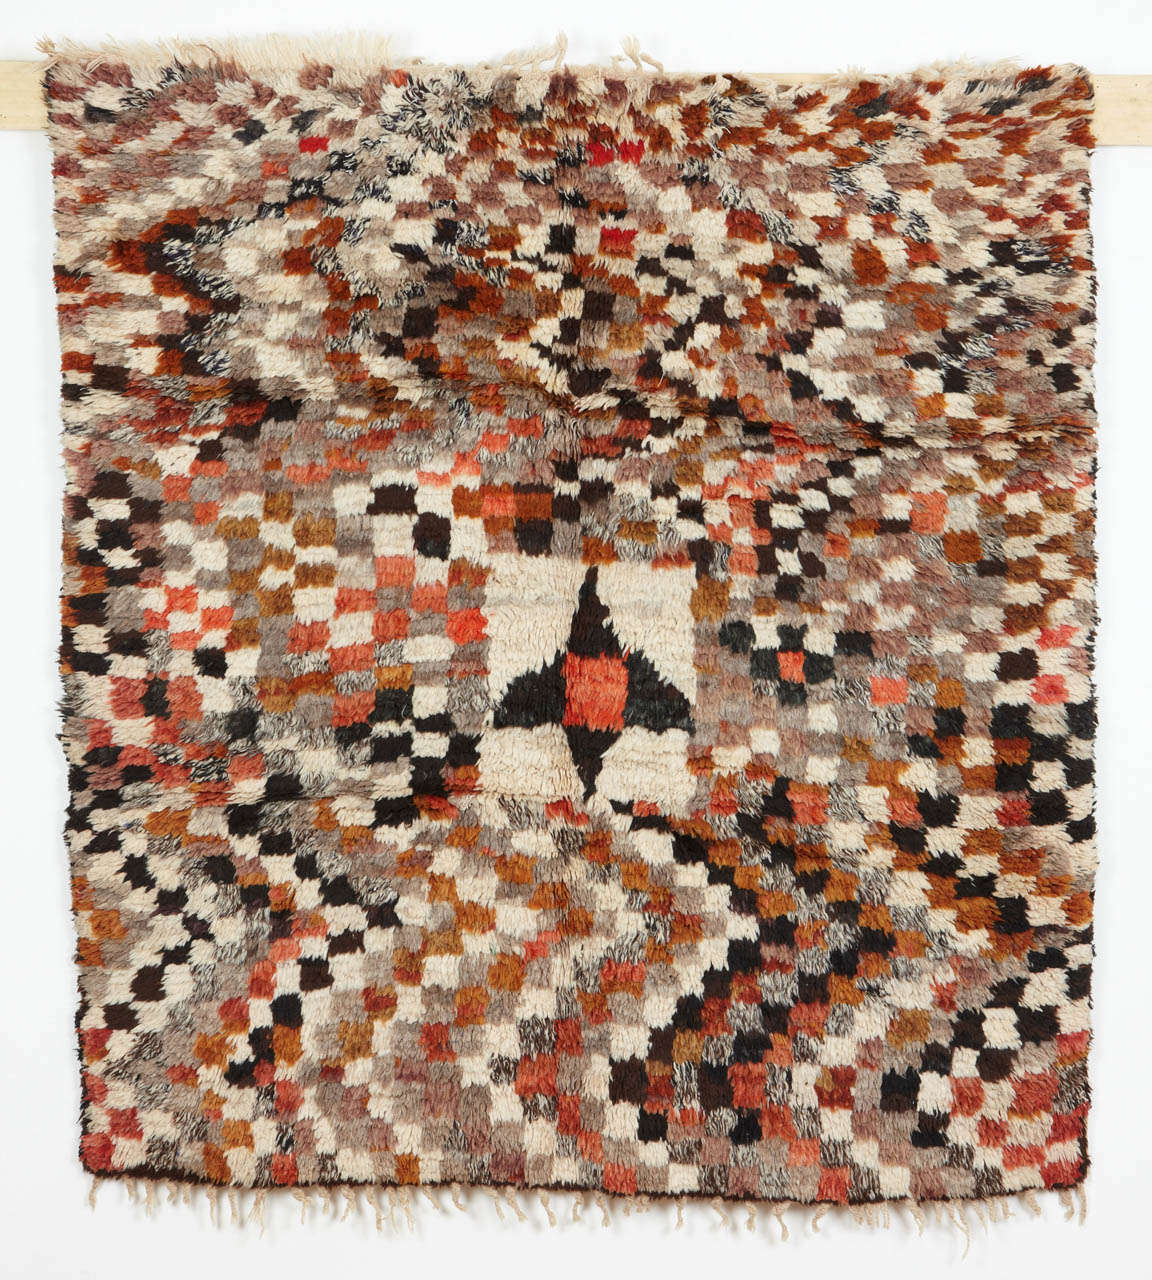 Checkerboard Rug: Abstract Checkerboard Berber Rug For Sale At 1stdibs